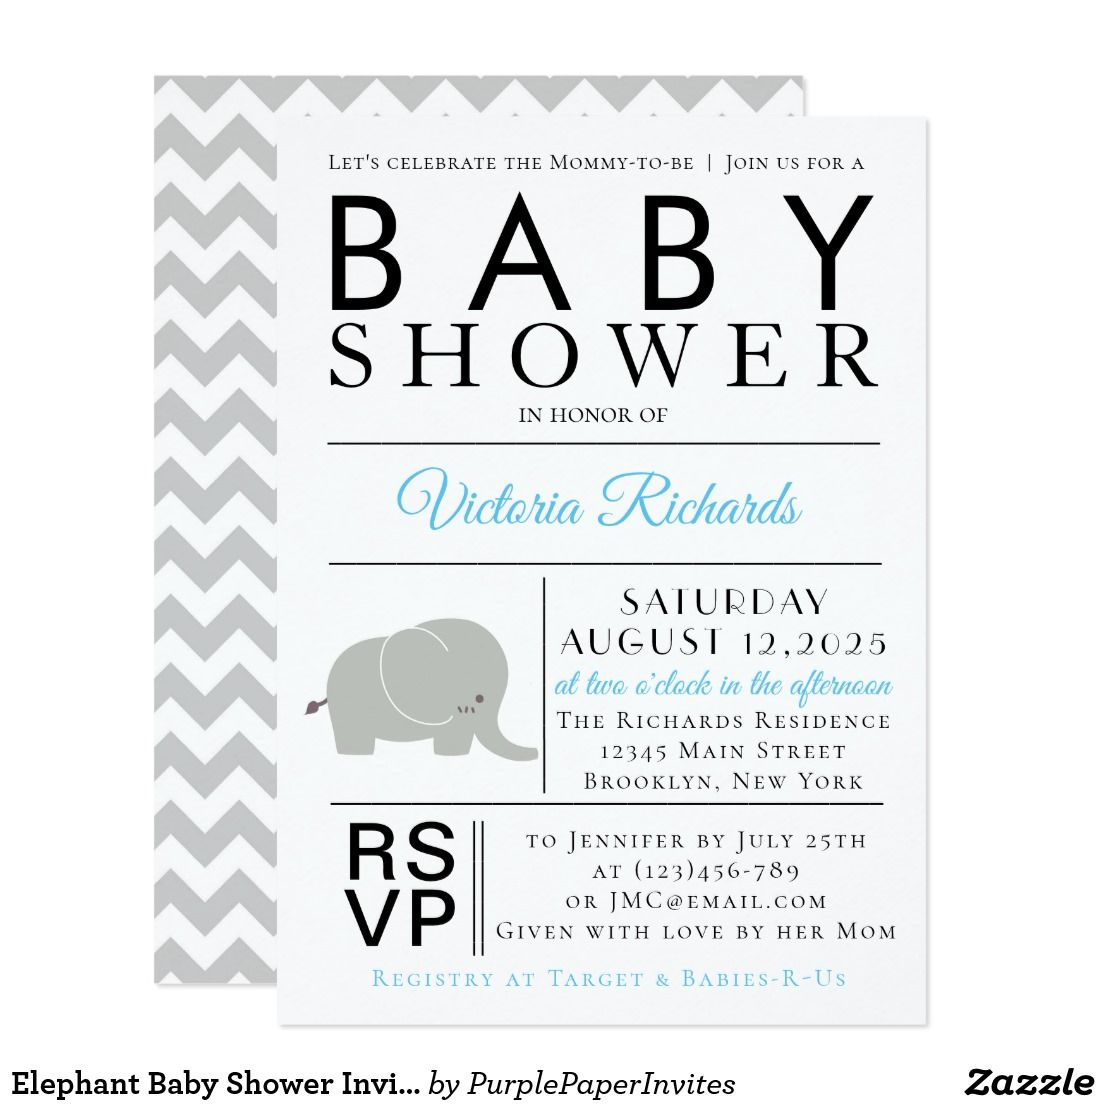 Elephant Baby Shower Invitations Chevron | Elephant baby showers ...